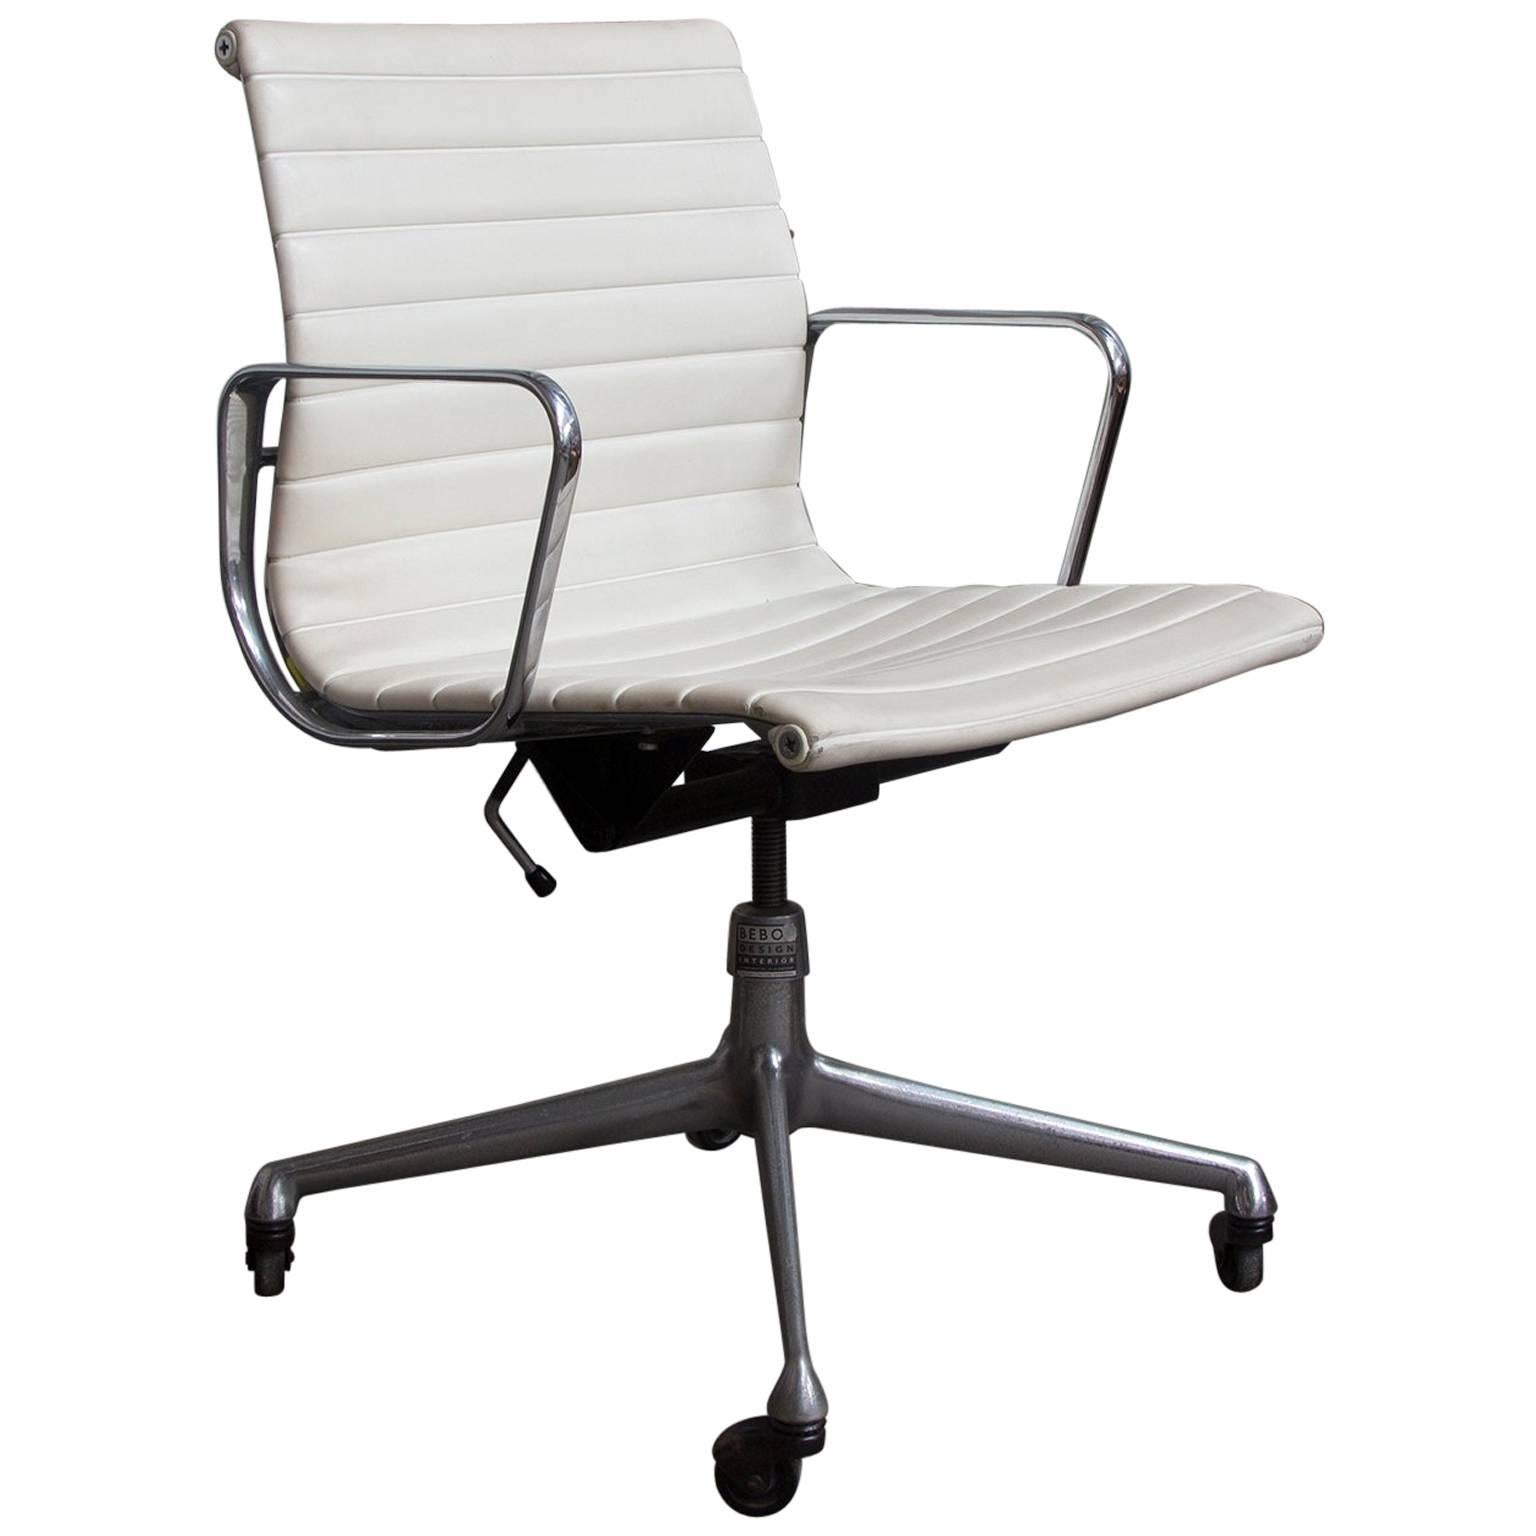 How To Adjust Office Chair 1958 Ray And Charles Eames White Vinyl Adjust Tilt Office Chair Four Wheels